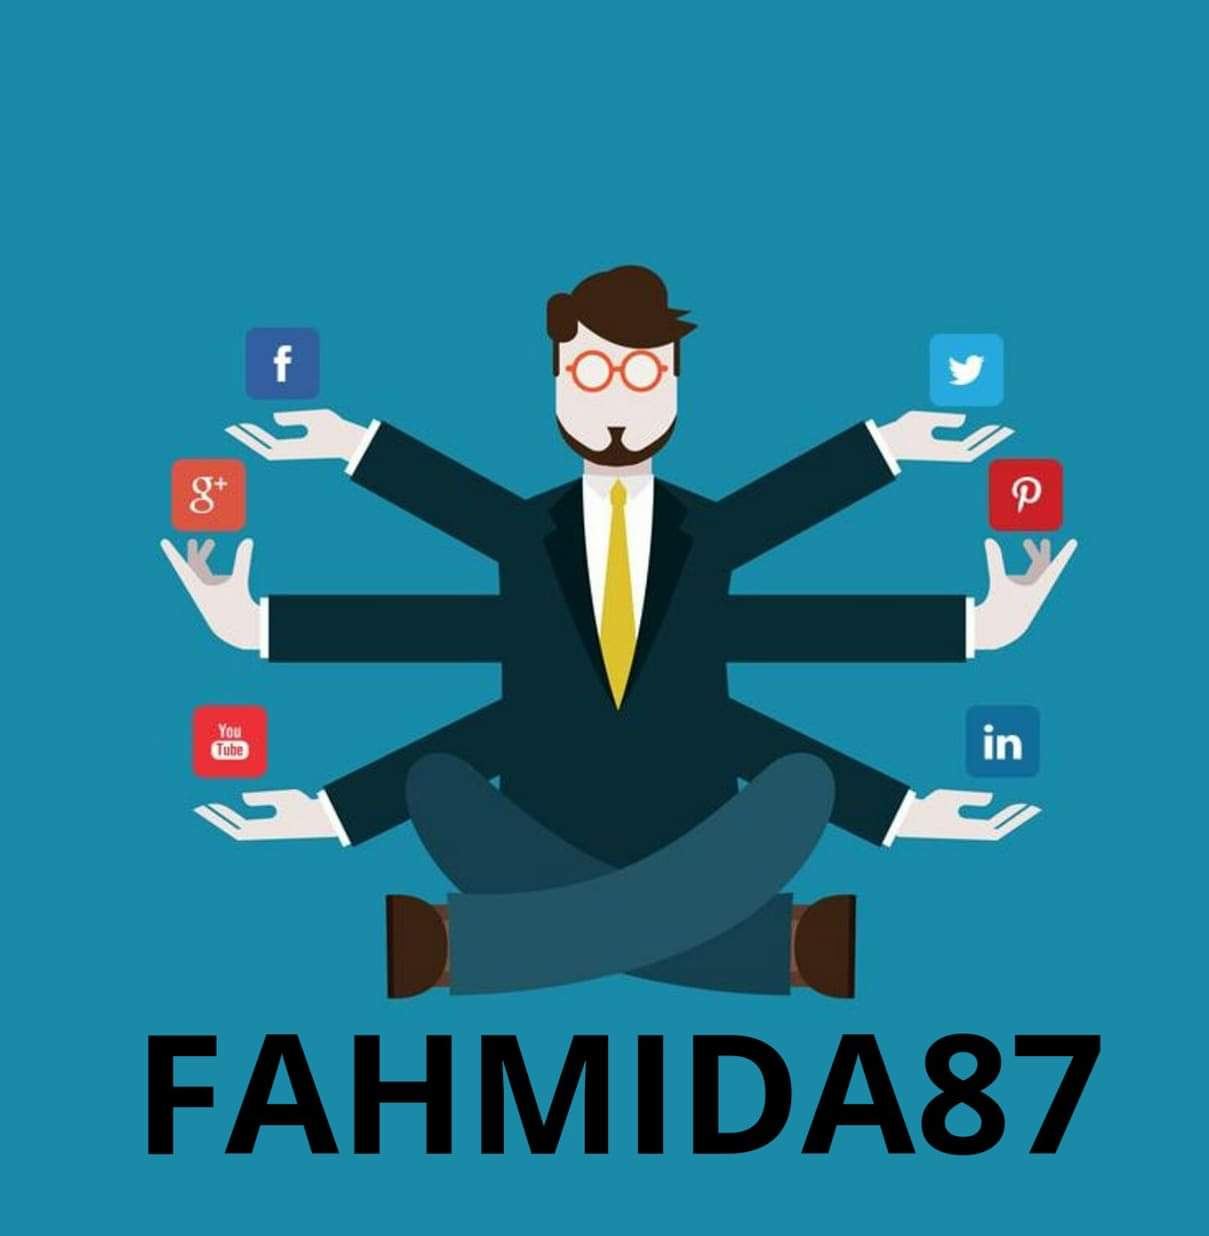 I Will Manage Your Social Media AC - Twitter, Instagram, Vimeo, Pinterest, YouTube, FB, SoundCloud